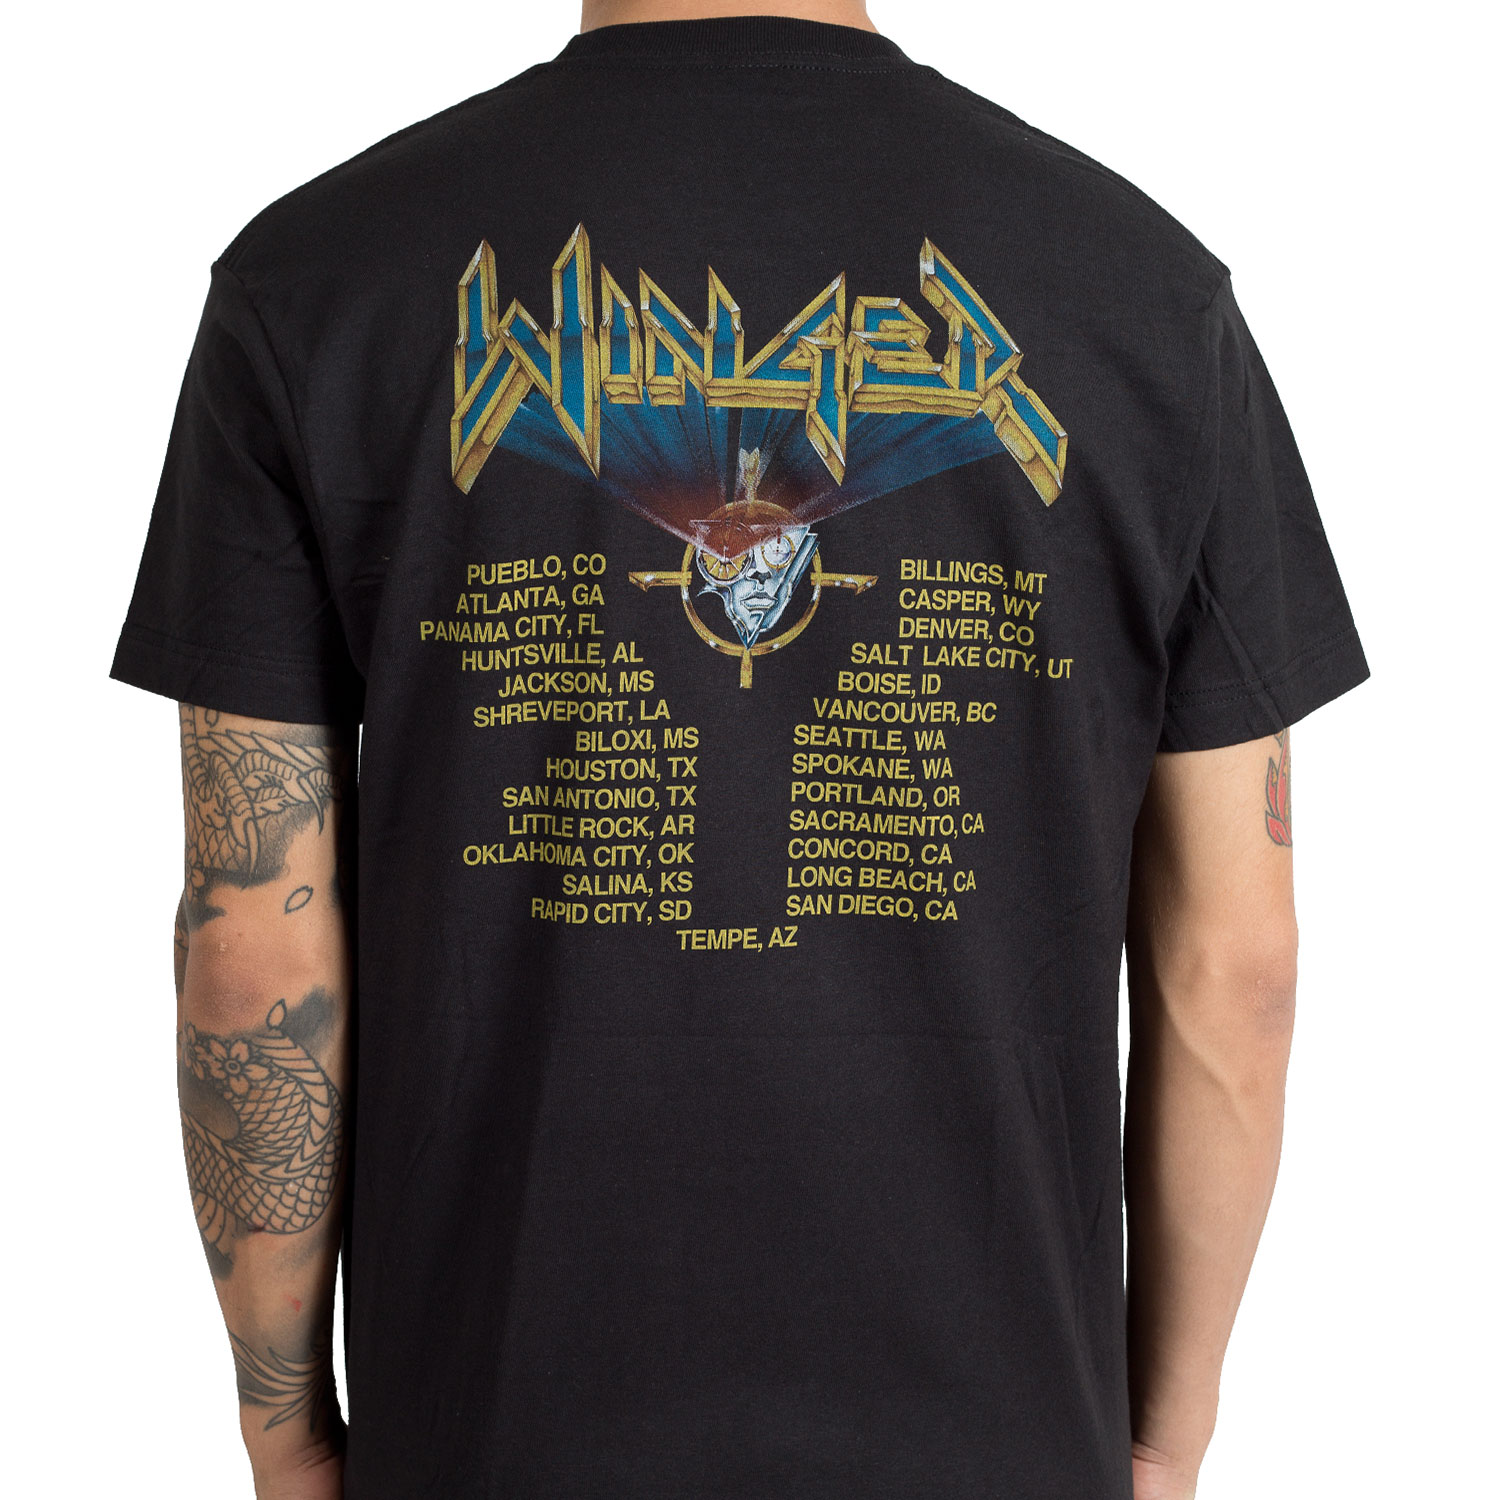 Winger Quot In The Heart Of The Young Tour Quot T Shirt